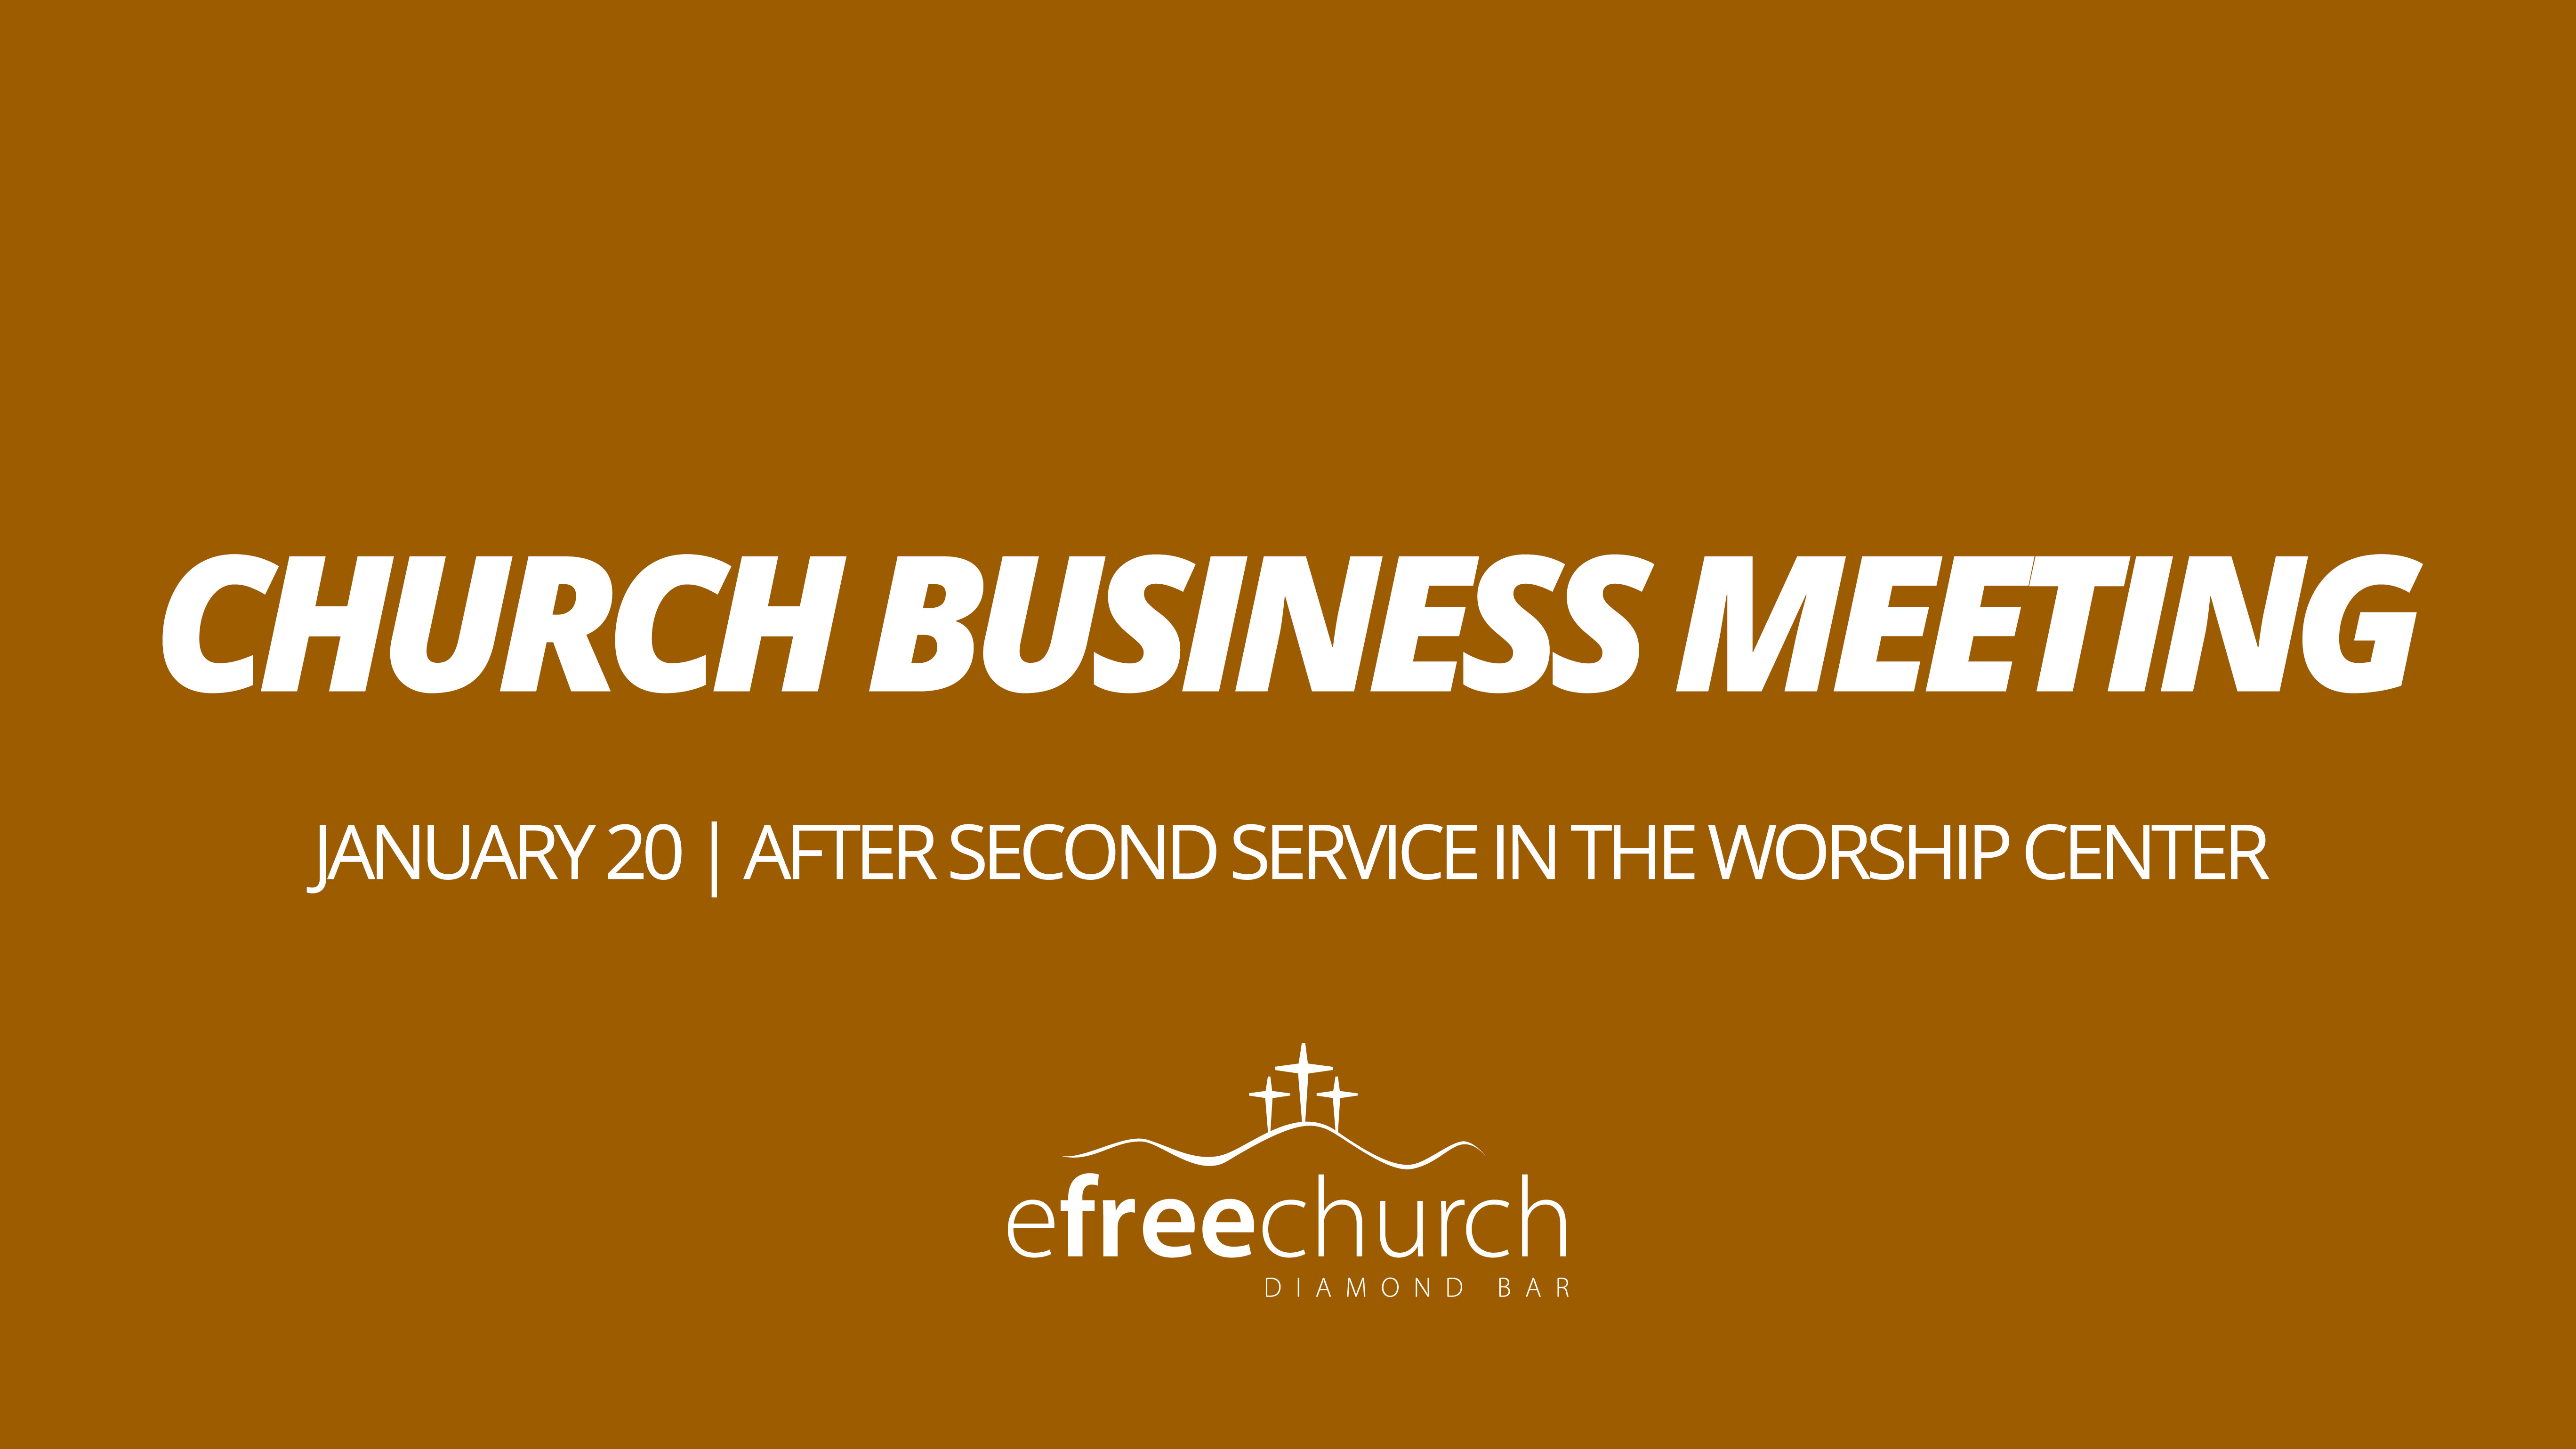 church-business-meeting image